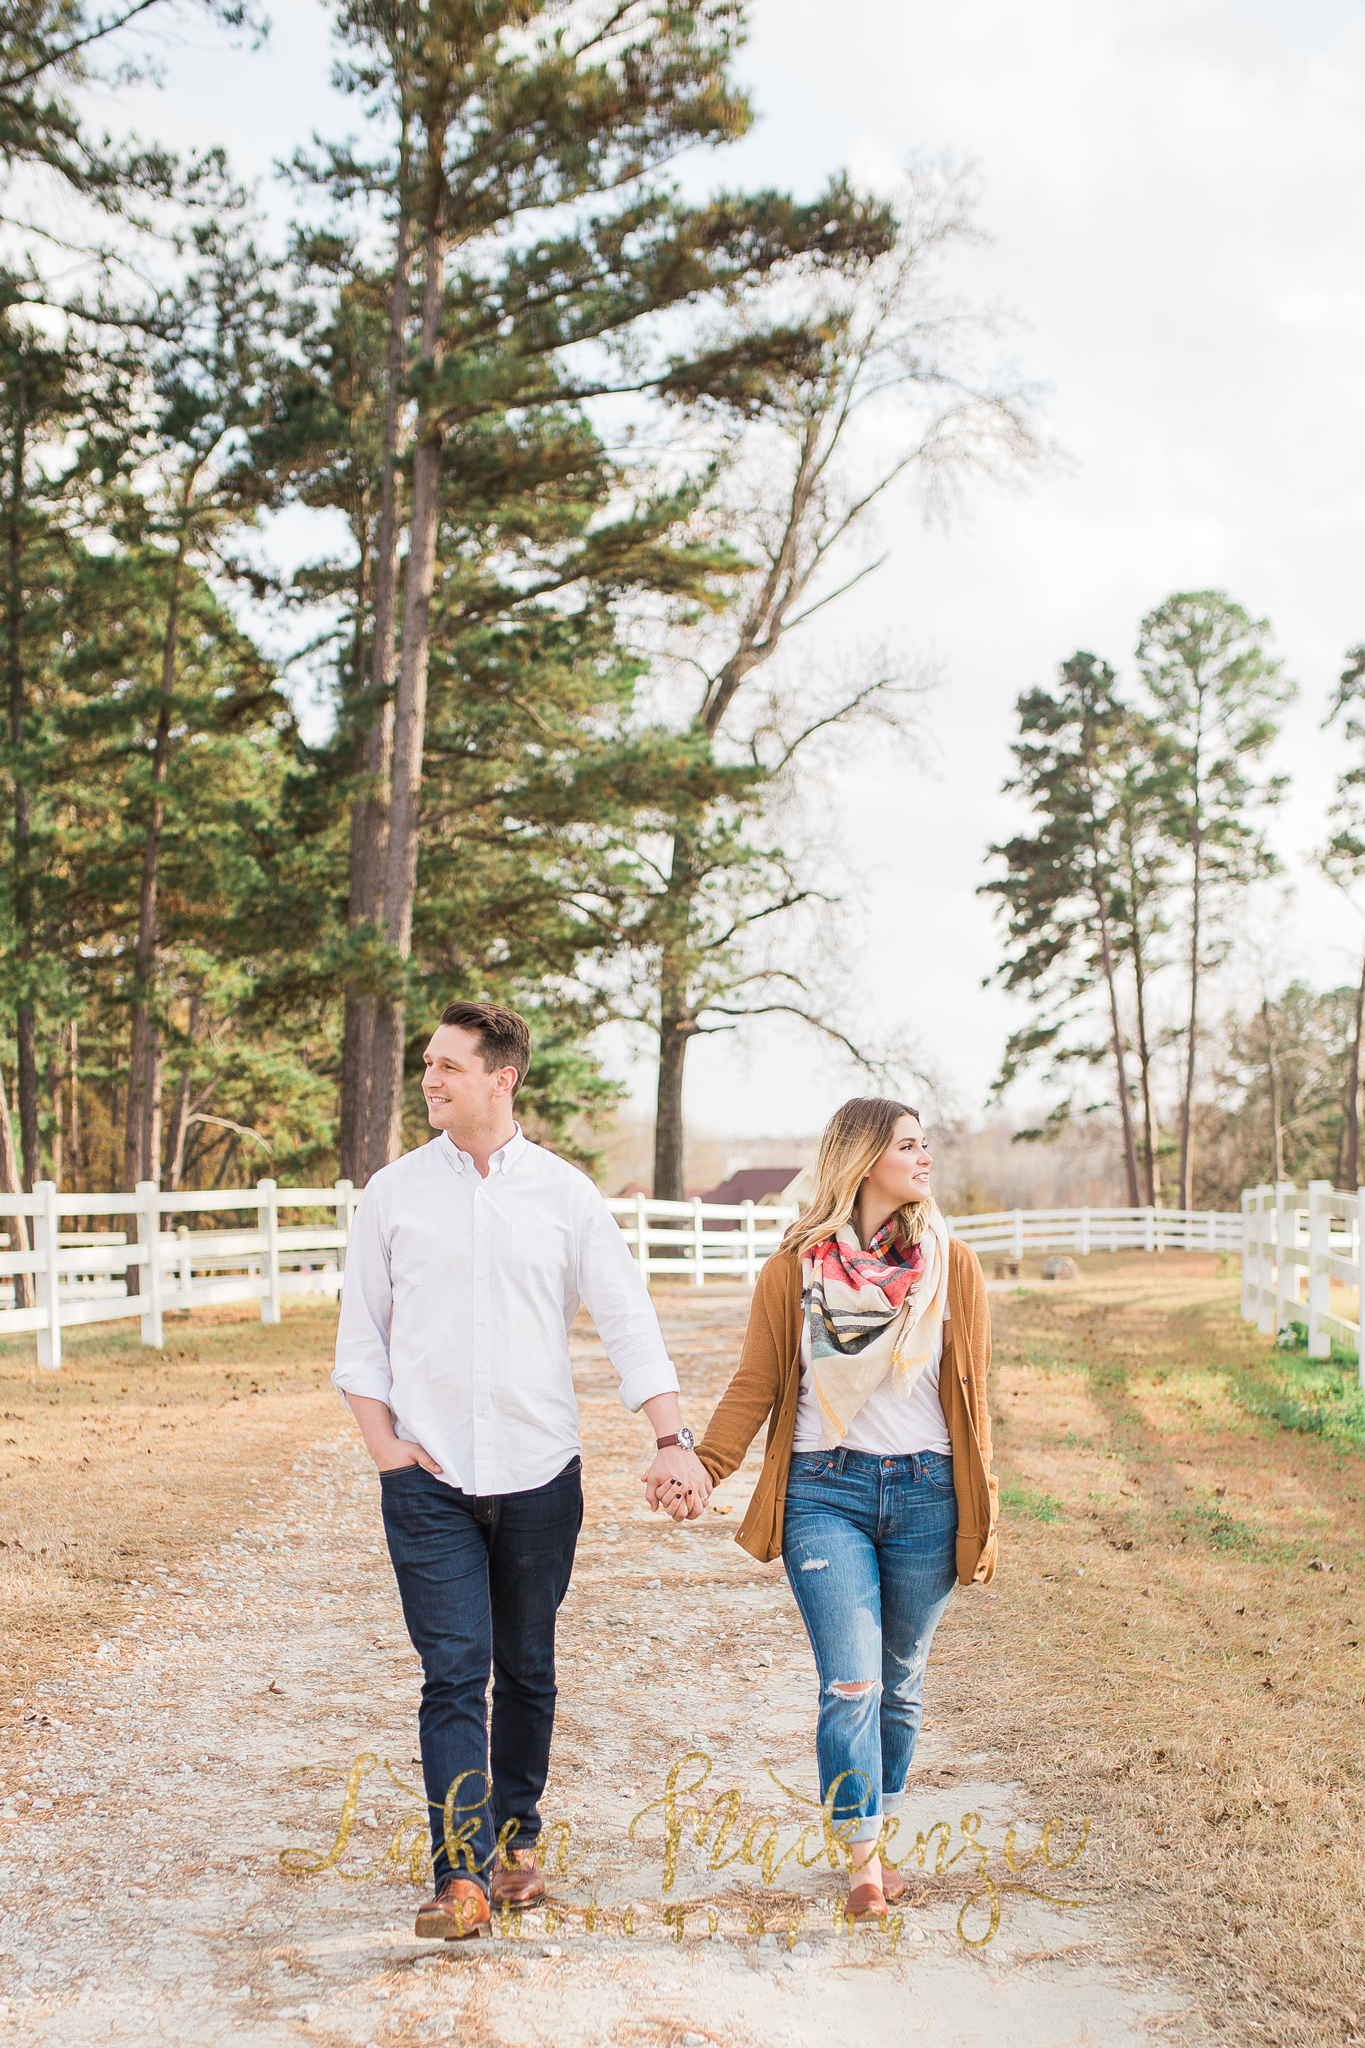 Dallas Fort Worth Lifestyle Family Photographer